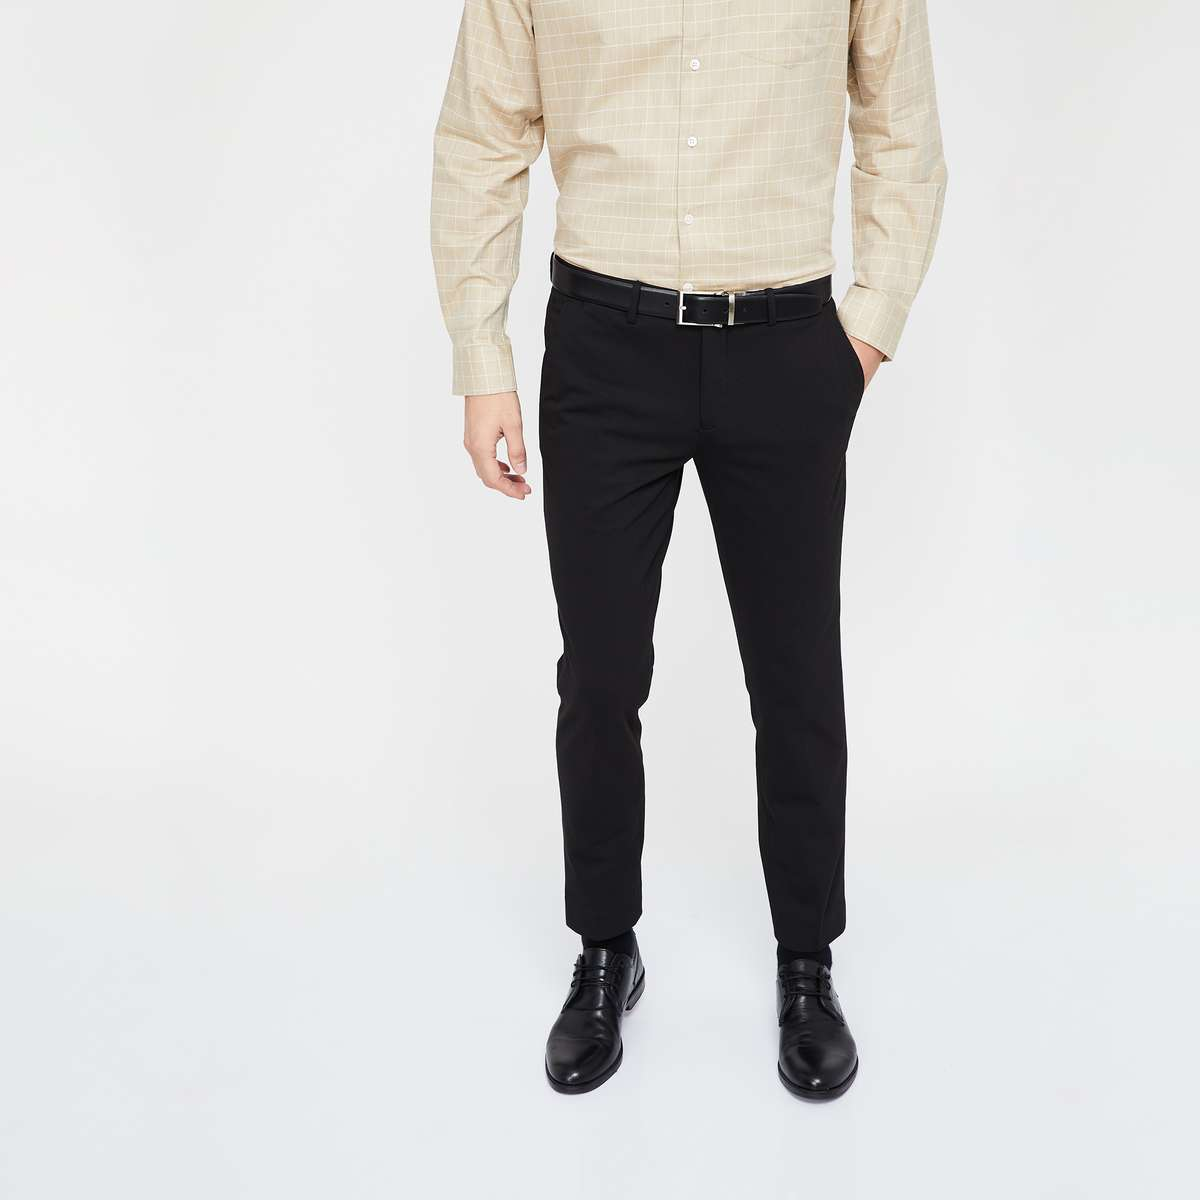 1.CODE Solid Low Rise Slim Fit Trousers